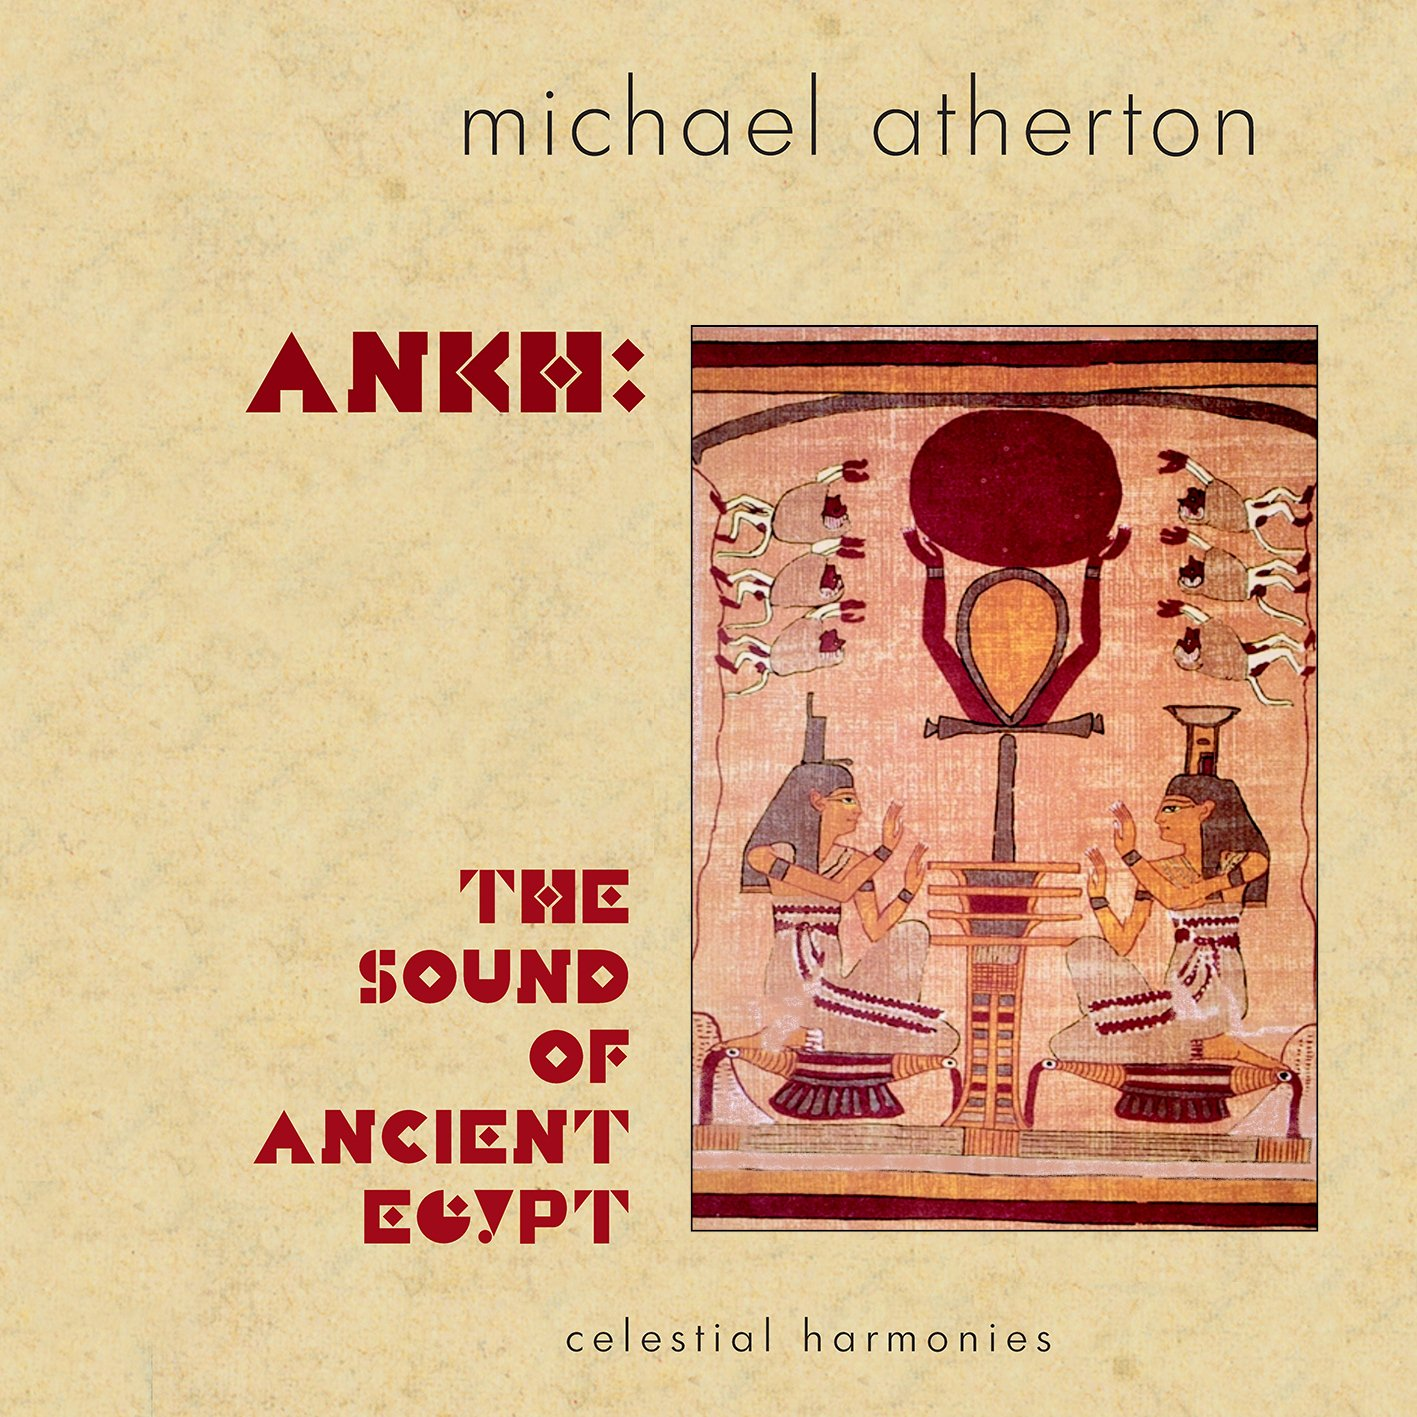 michael atherton ankh sound of ancient egypt amazon com music